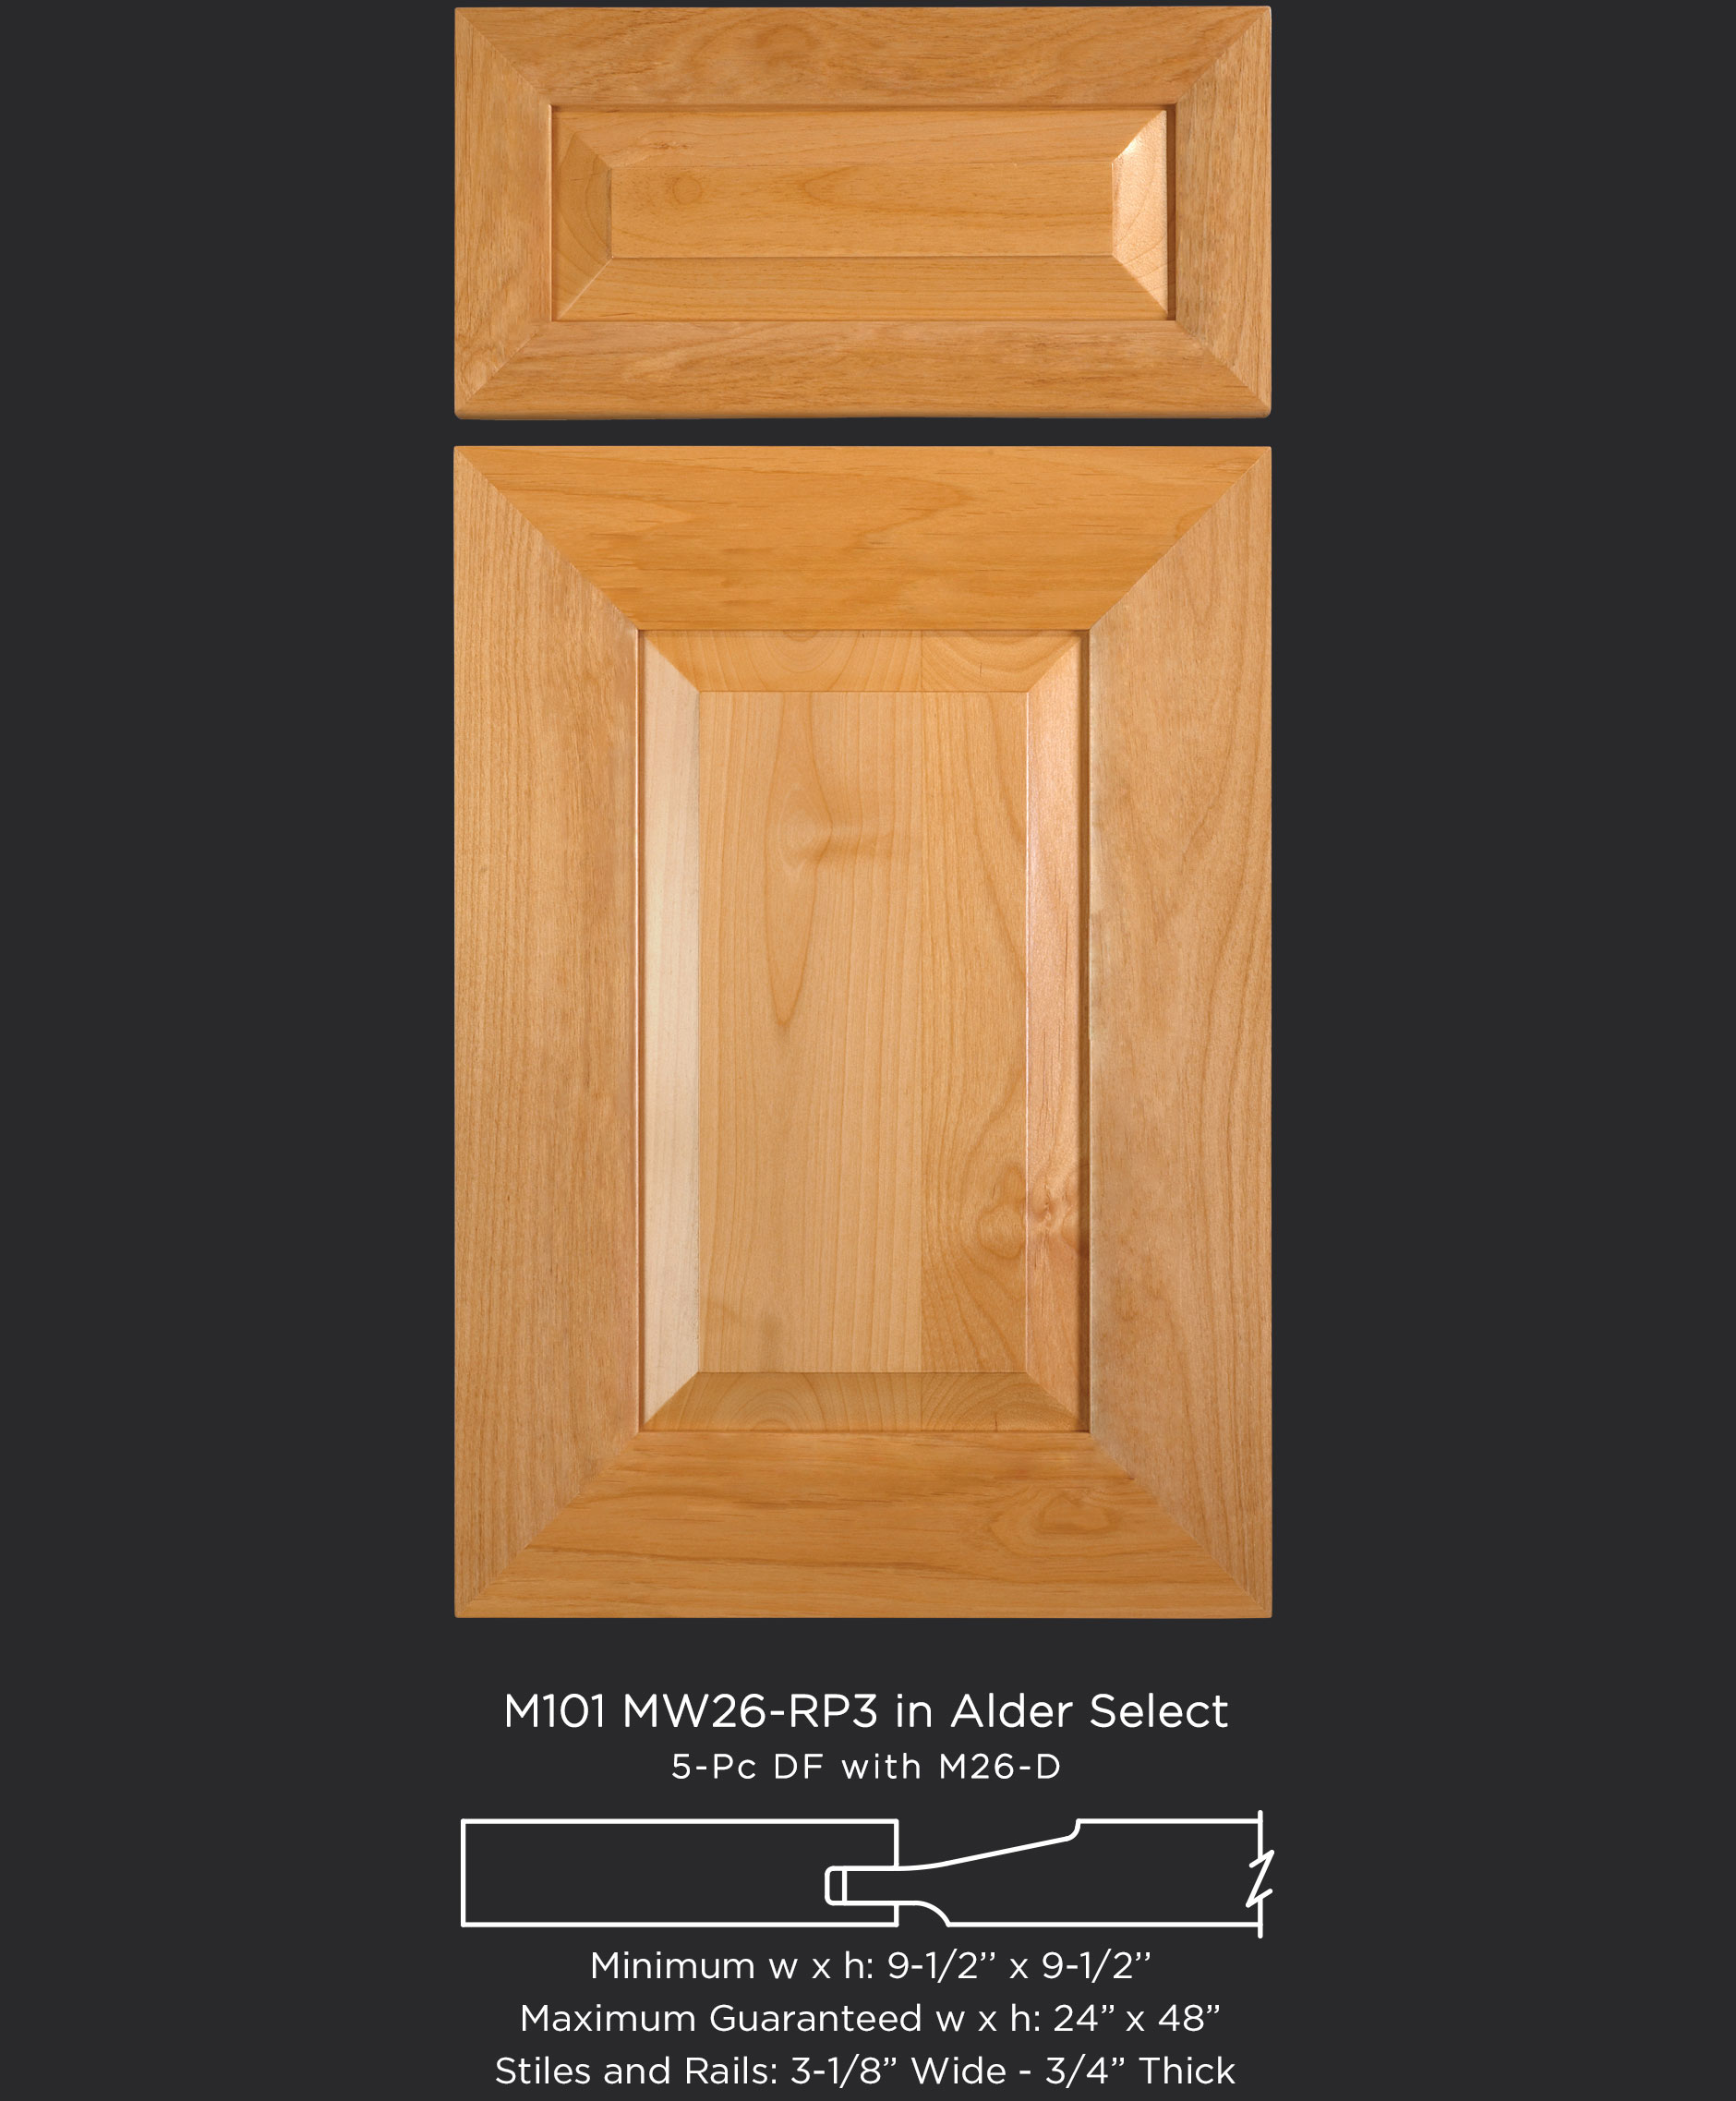 Mitered Cabinet Door M101 MW26 RP3 in Alder Select and 5-piece drawer front with MW26-D